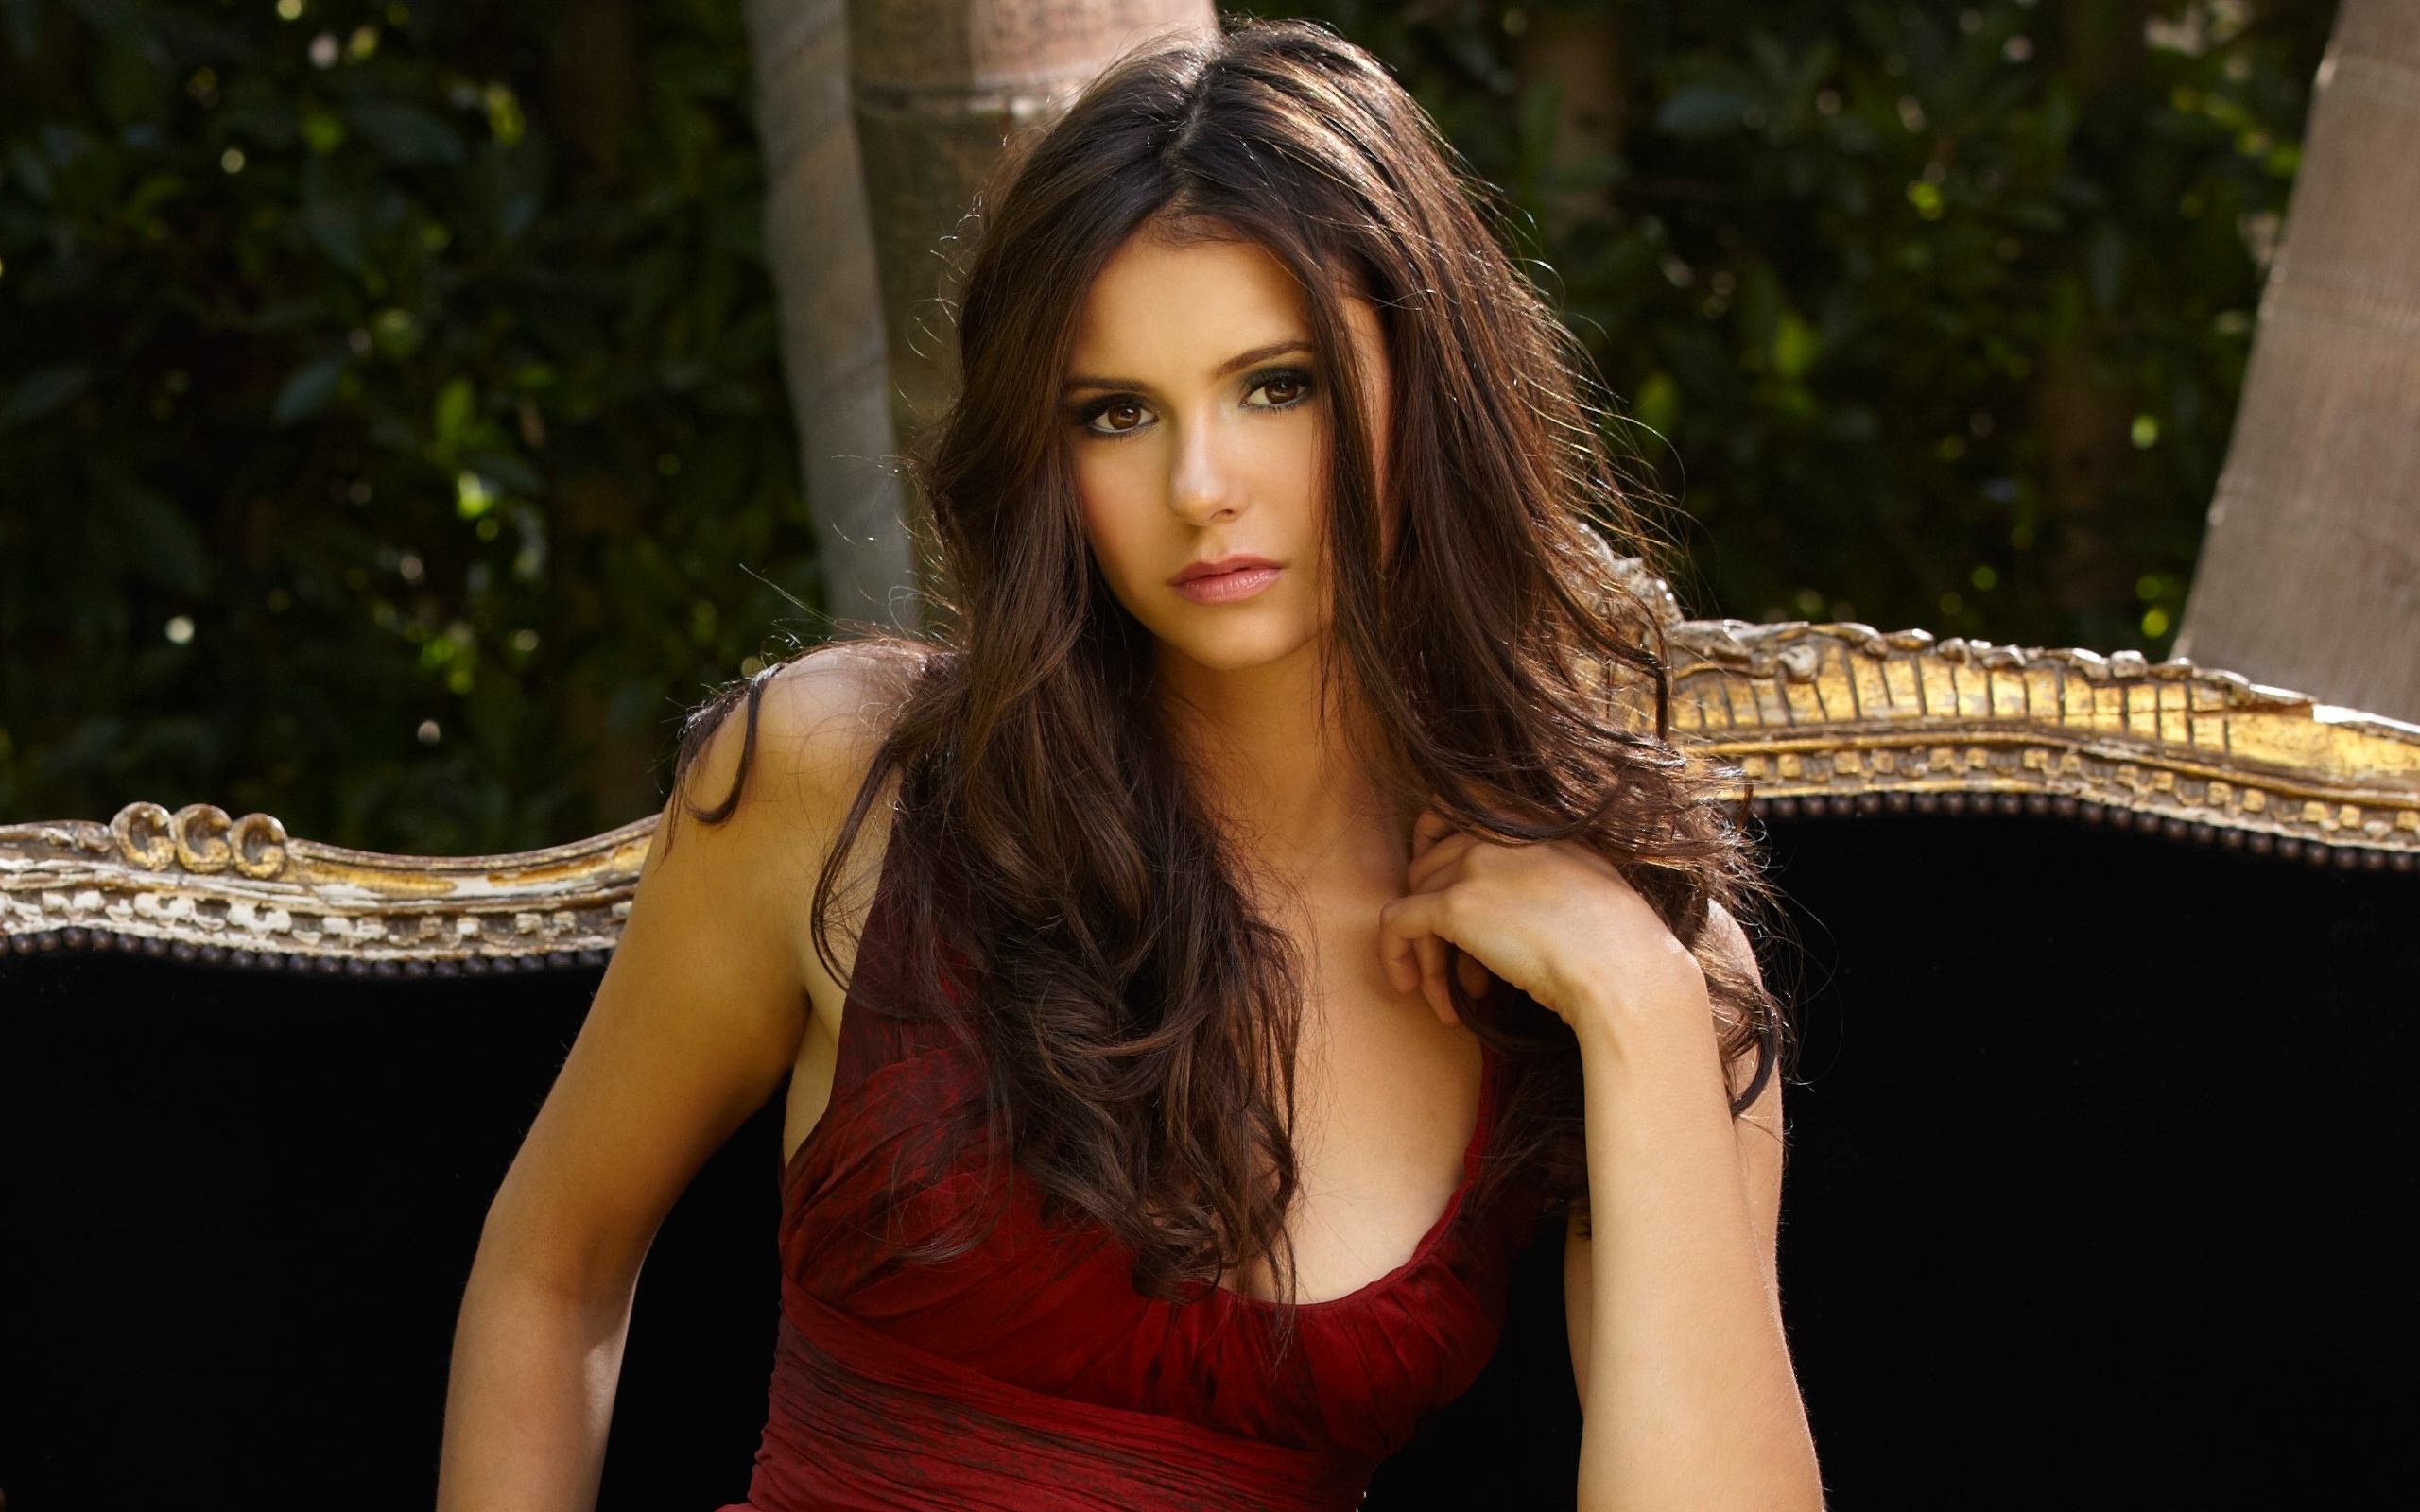 nina dobrev full hd - photo #4